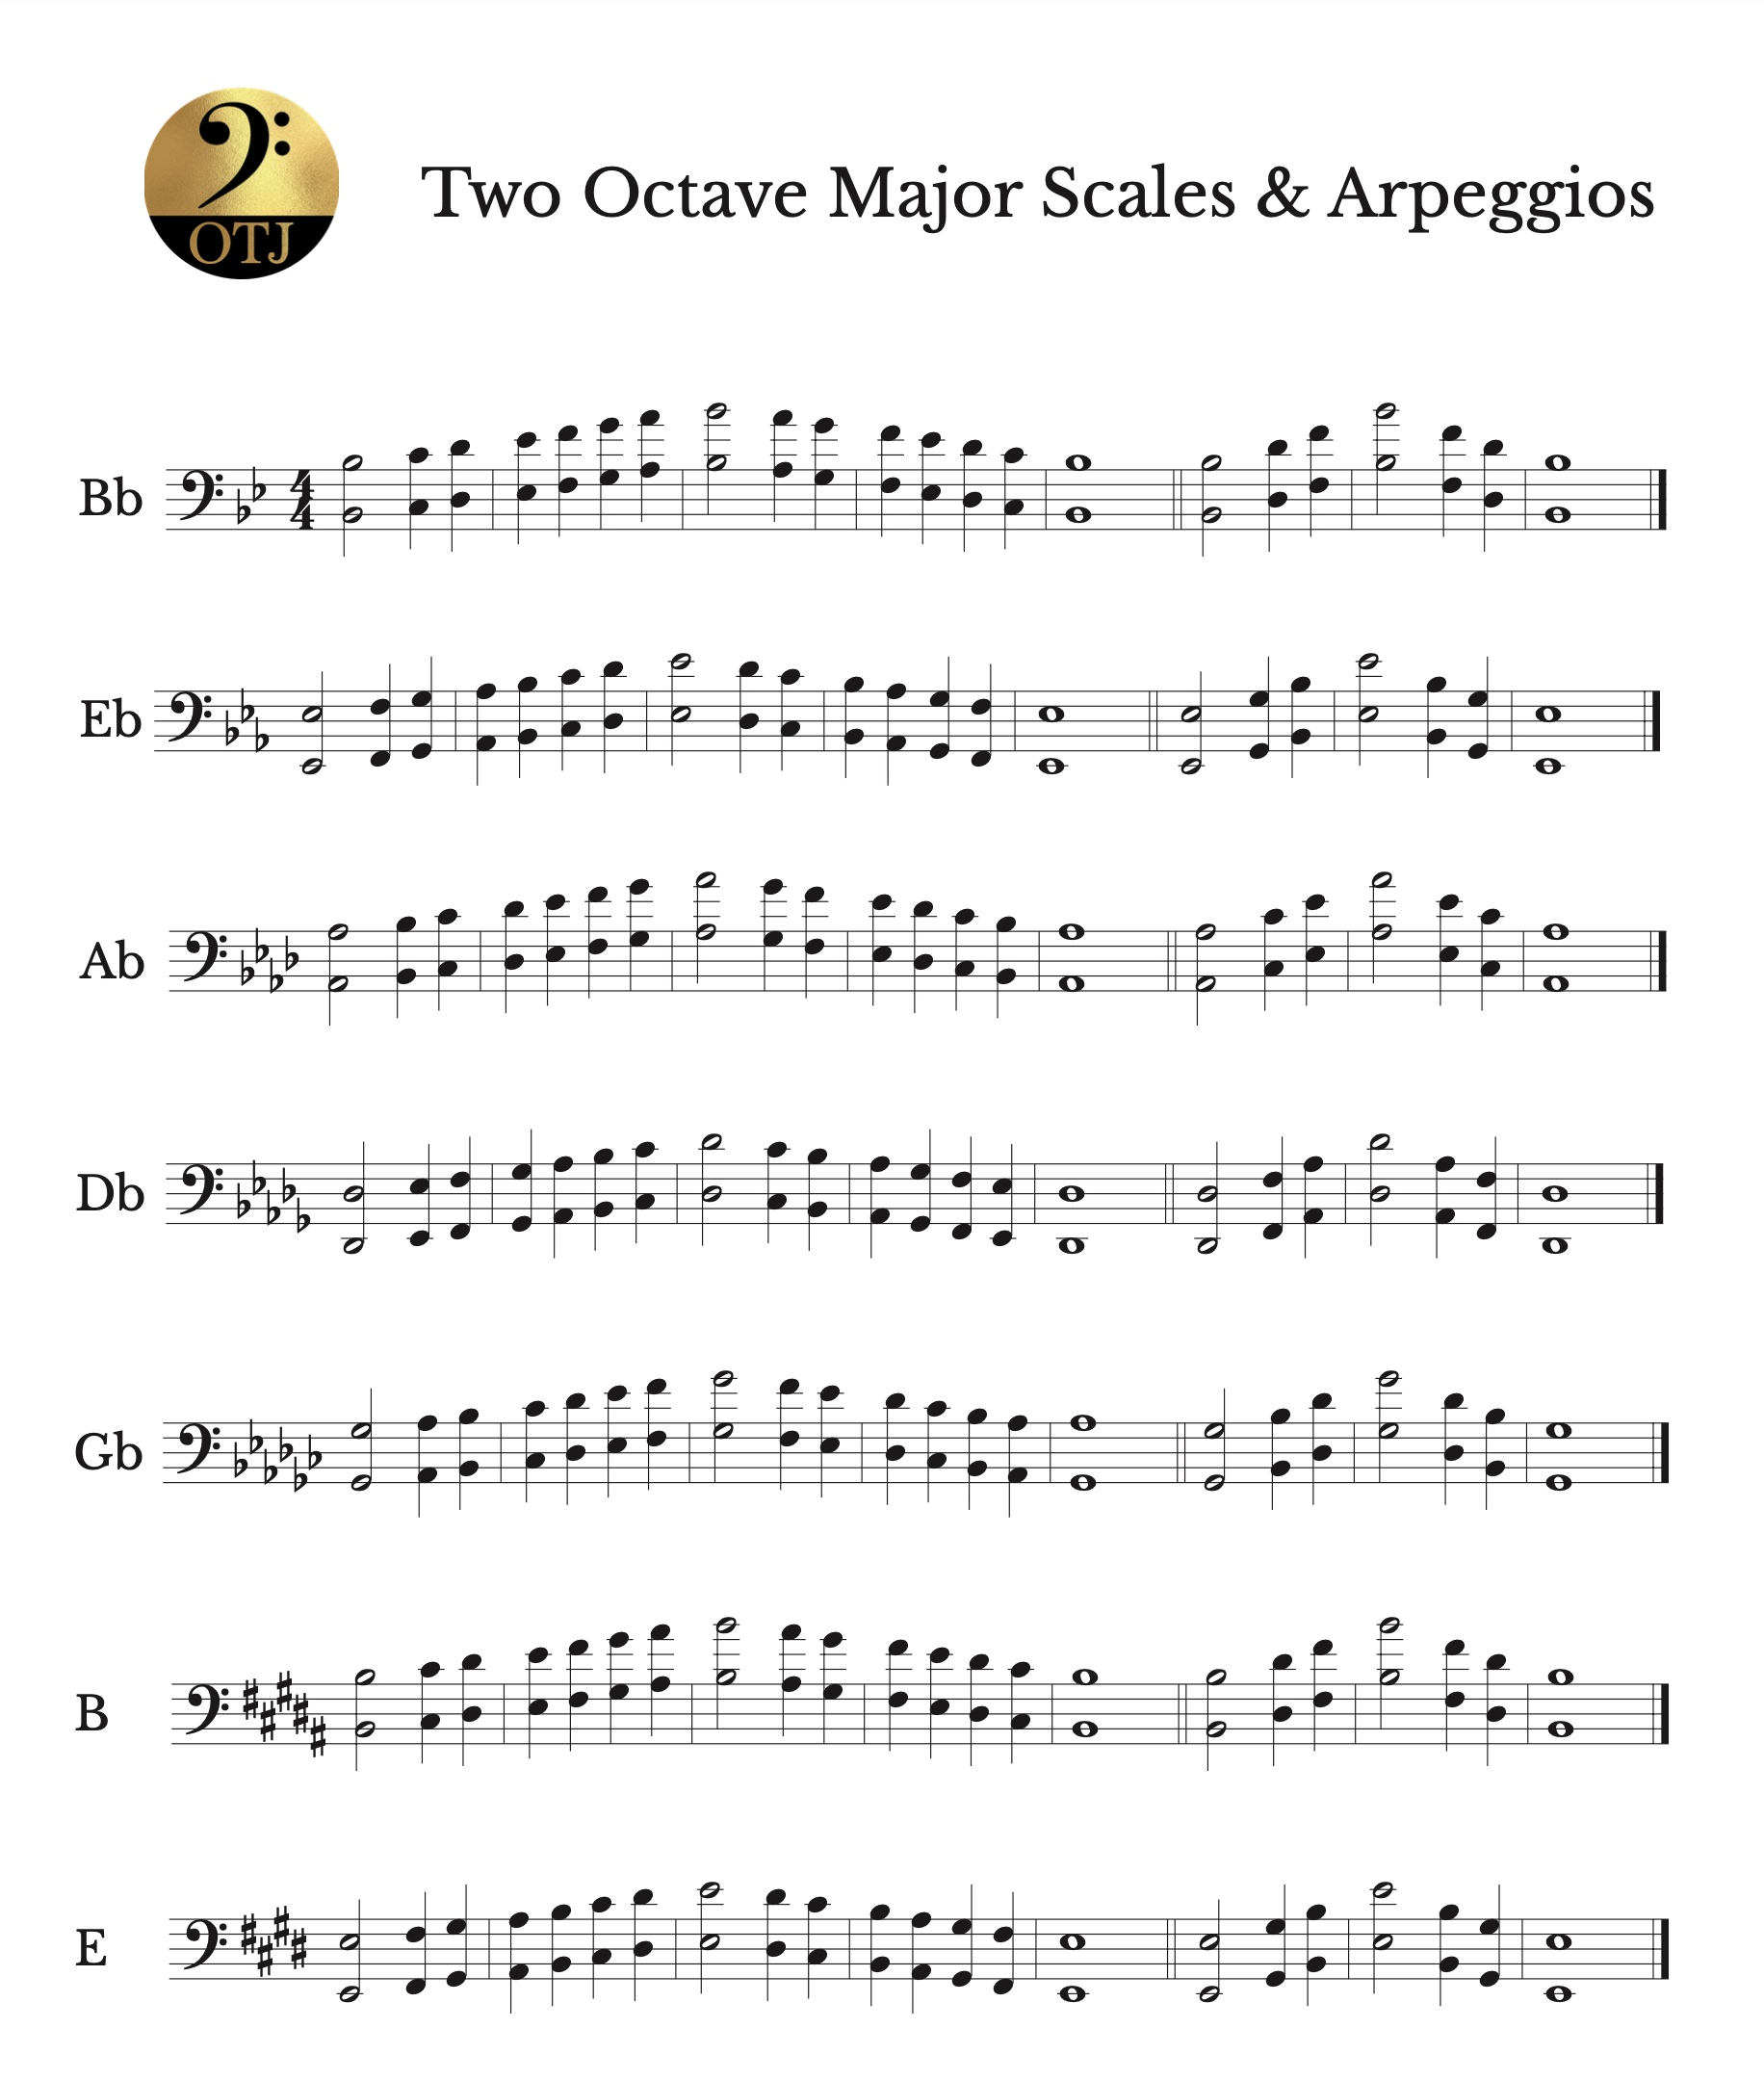 Two Octave Major Scales & Arpeggios